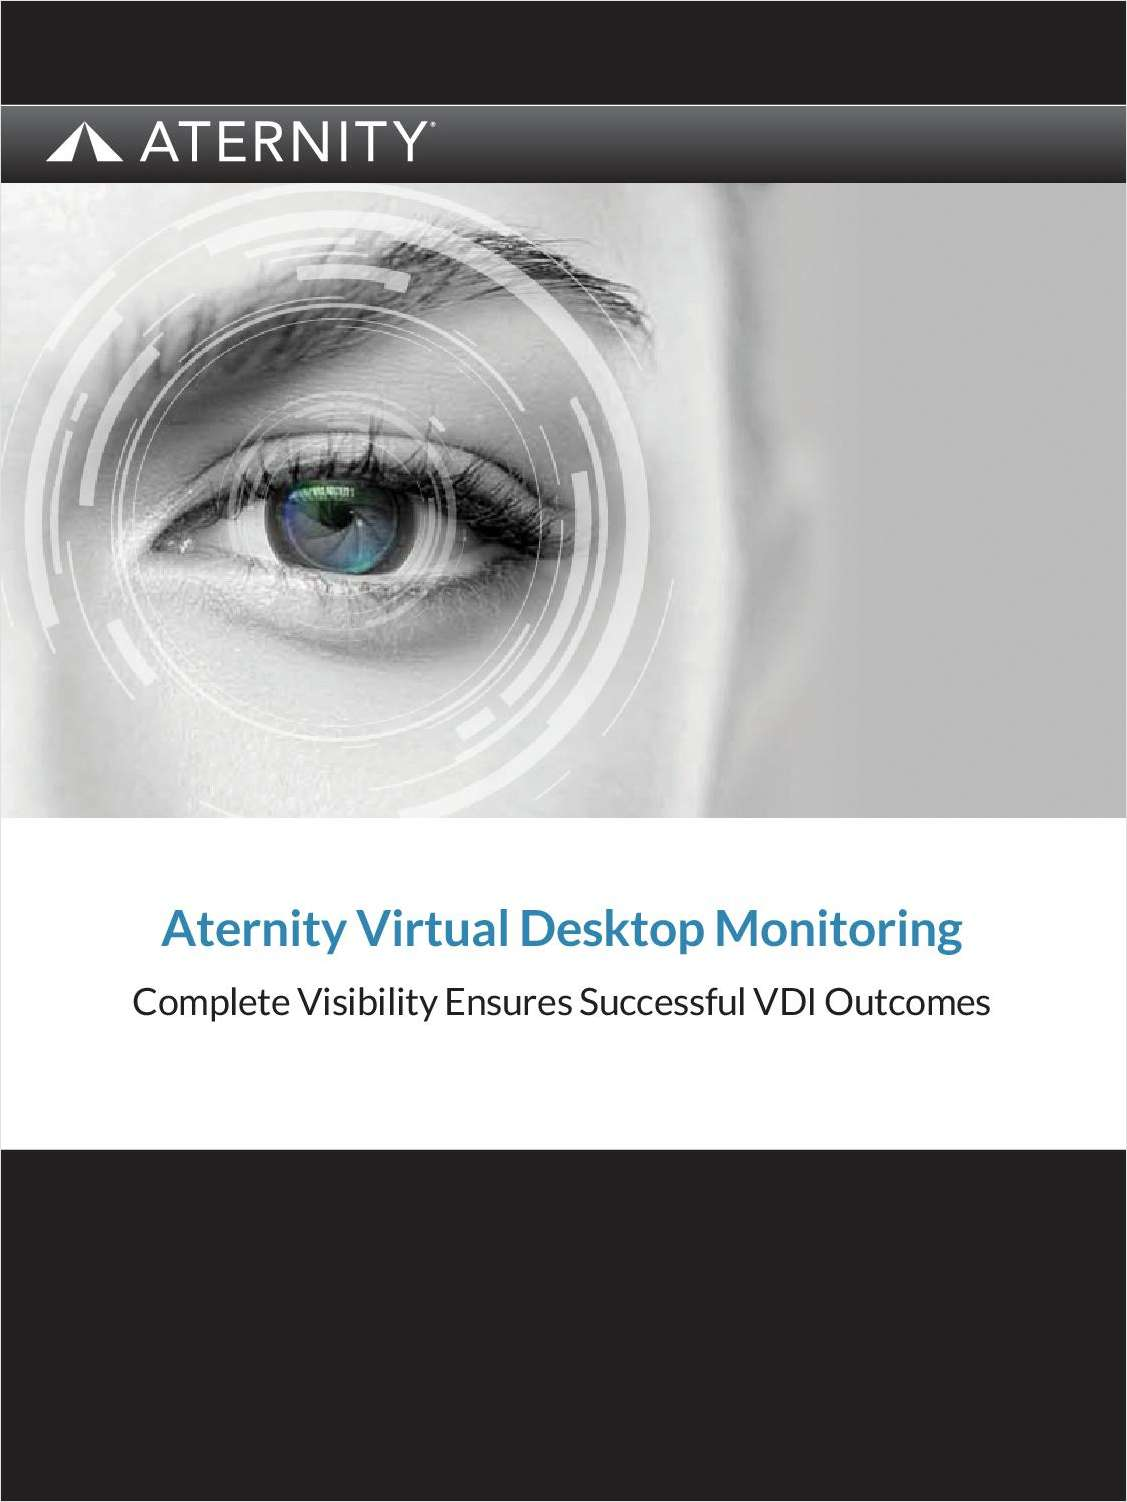 Monitoring End User Experience in a VDI Environment:  Complete Visibility Ensures Successful VDI Outcomes